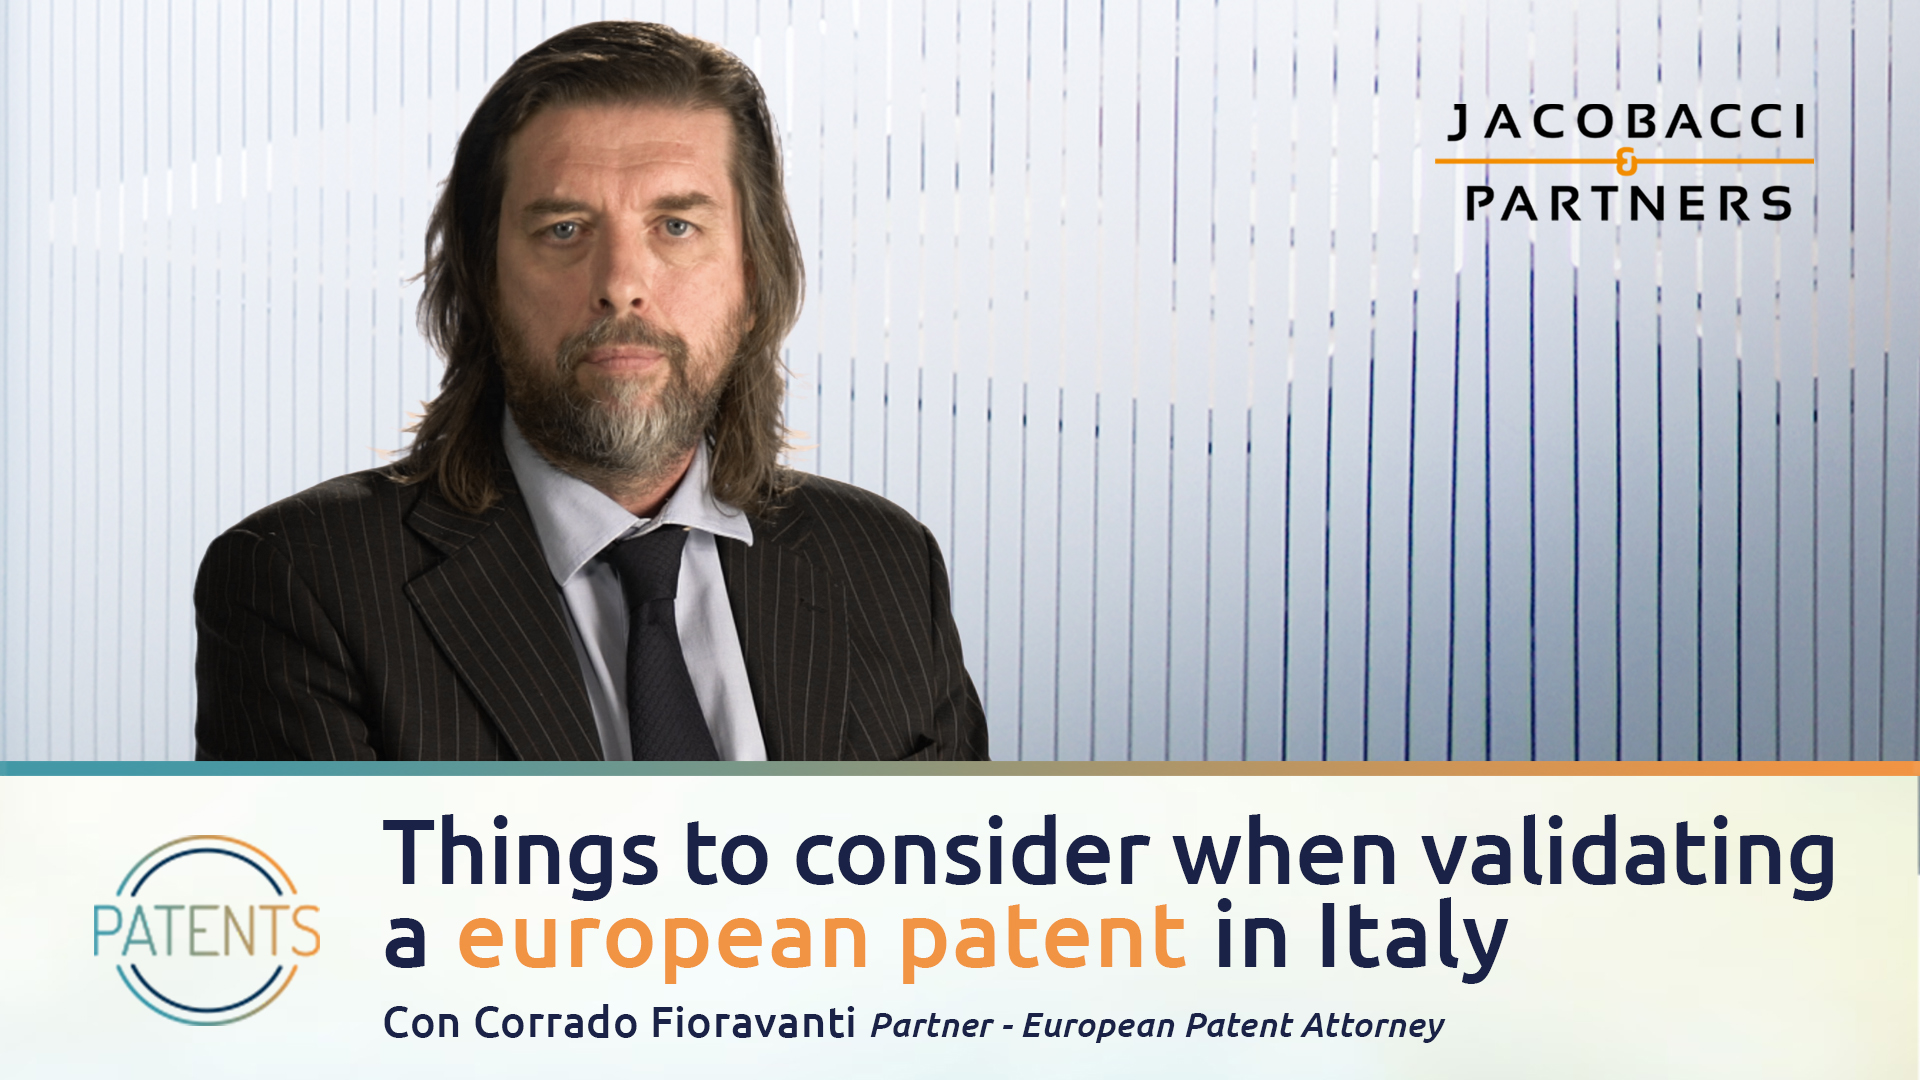 Things to consider when validating a european patent in Italy